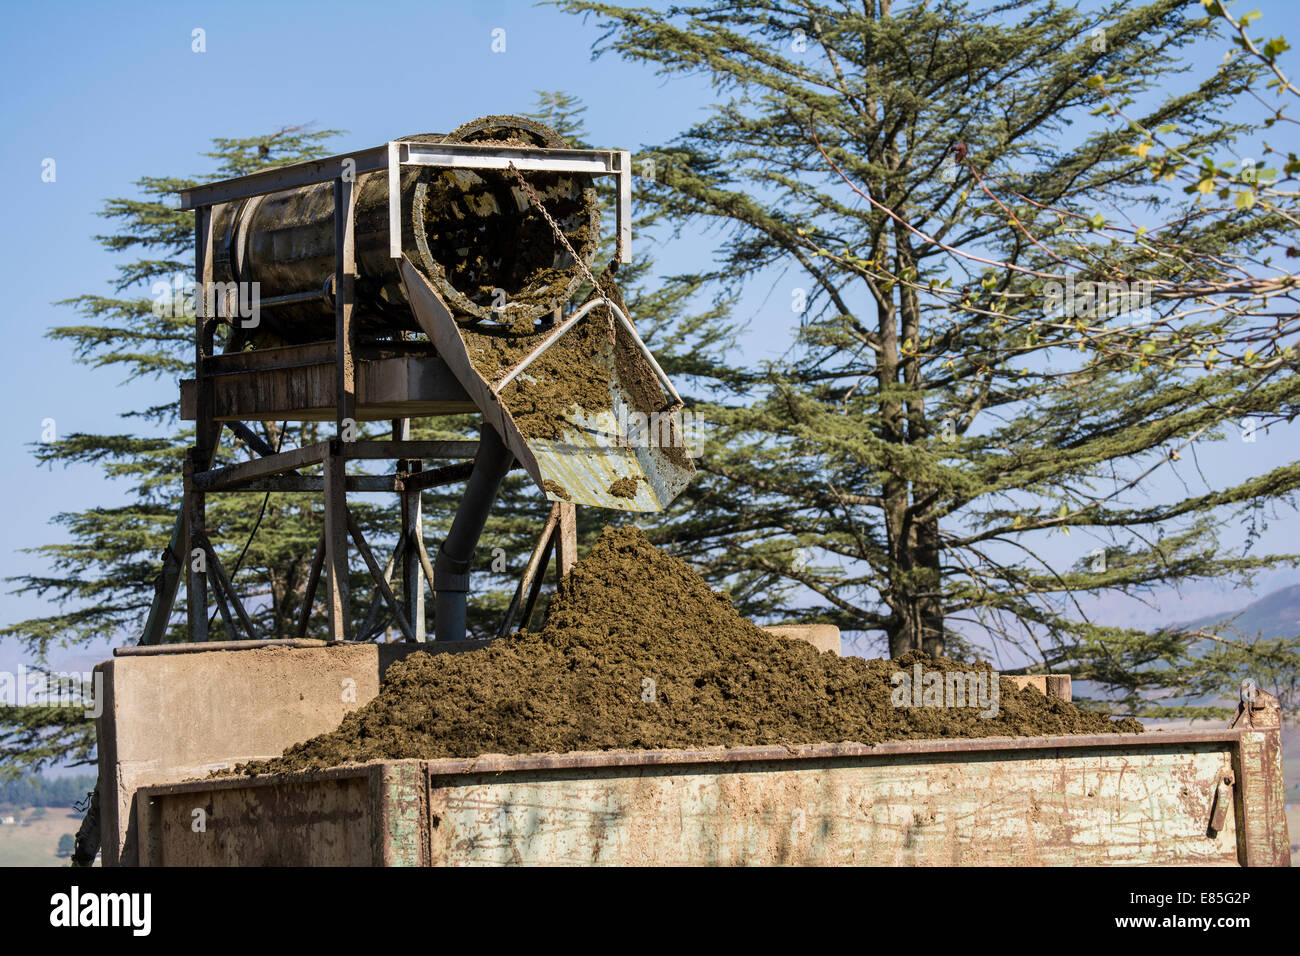 Sludge separator on a dairy farm - Stock Image